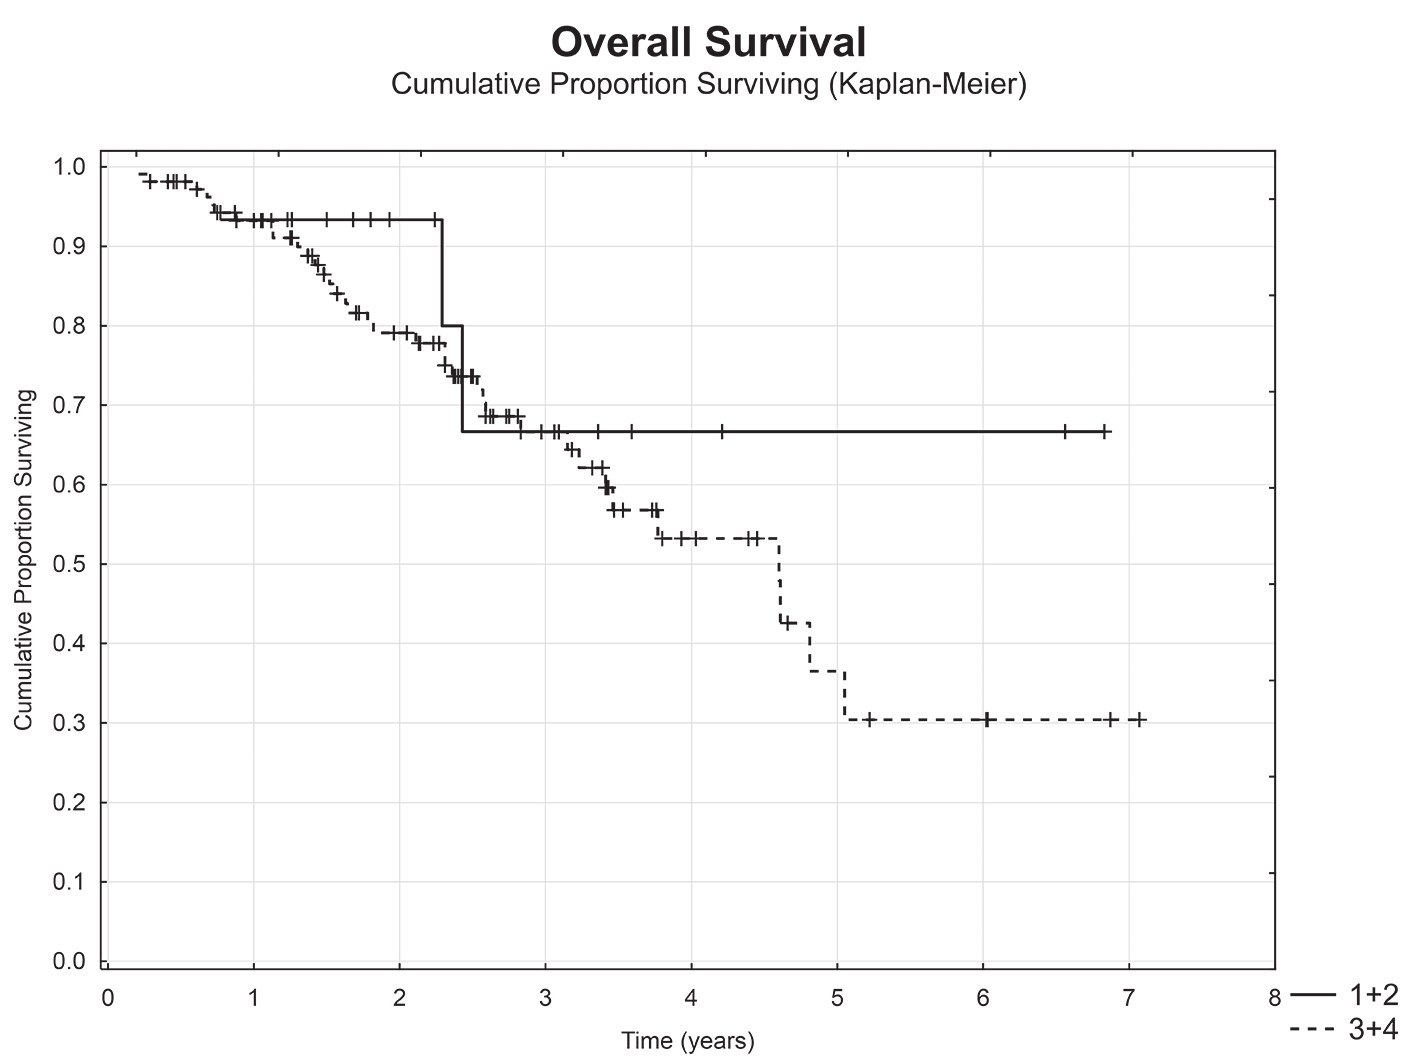 Celkové přežití nemocných dle pokročilosti lokálního nálezu (lokalizovaná malignita (T1+T2) vs. lokálně pokročilá malignita (T3+T4))